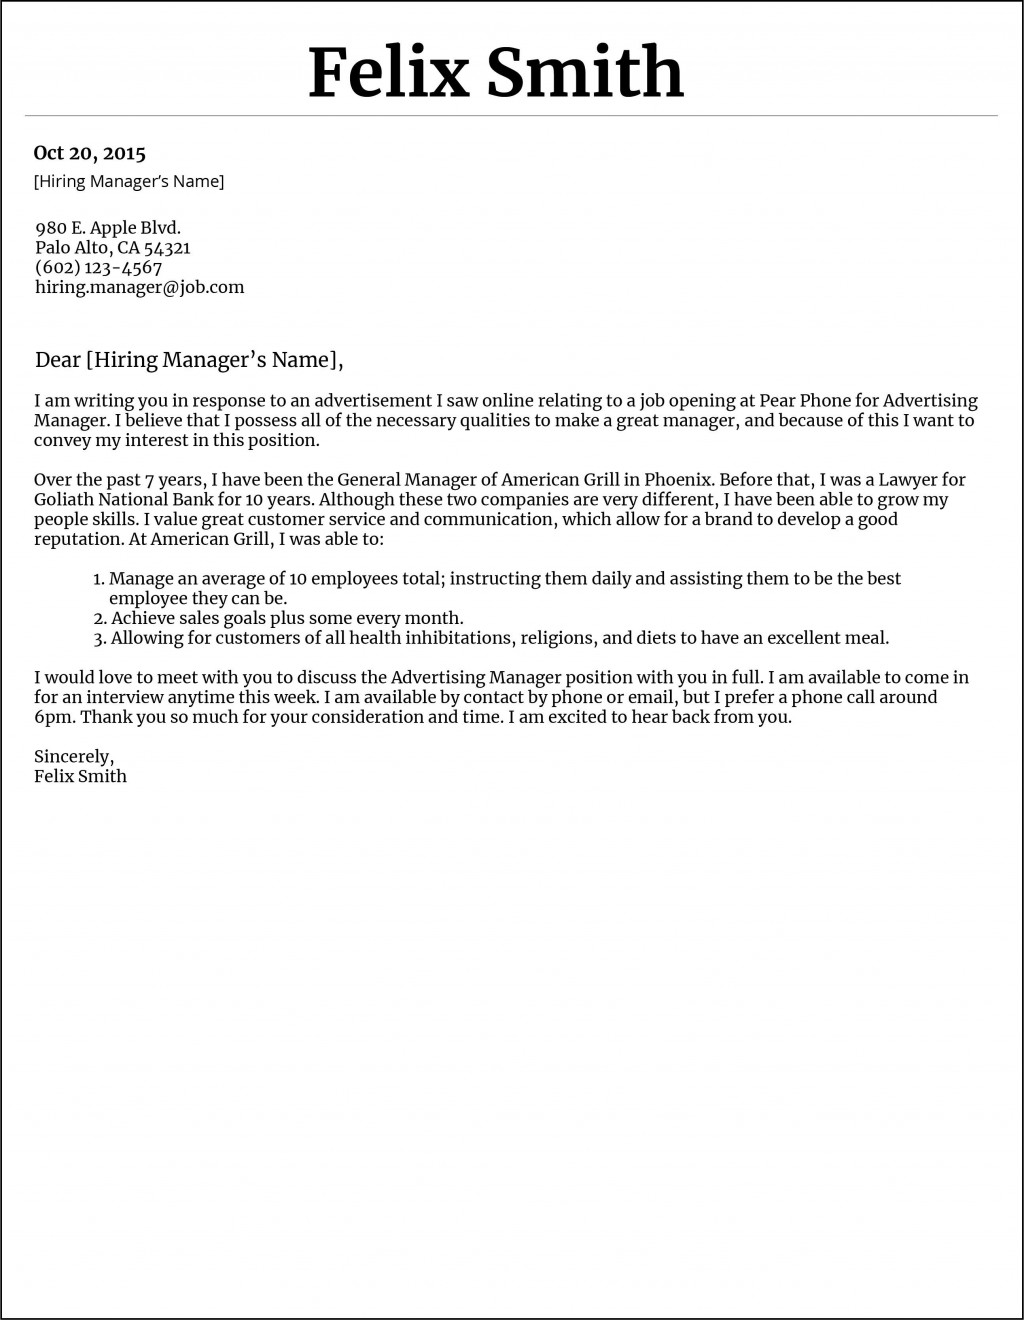 010 Marvelou General Manager Cover Letter Template Highest Clarity  HotelLarge